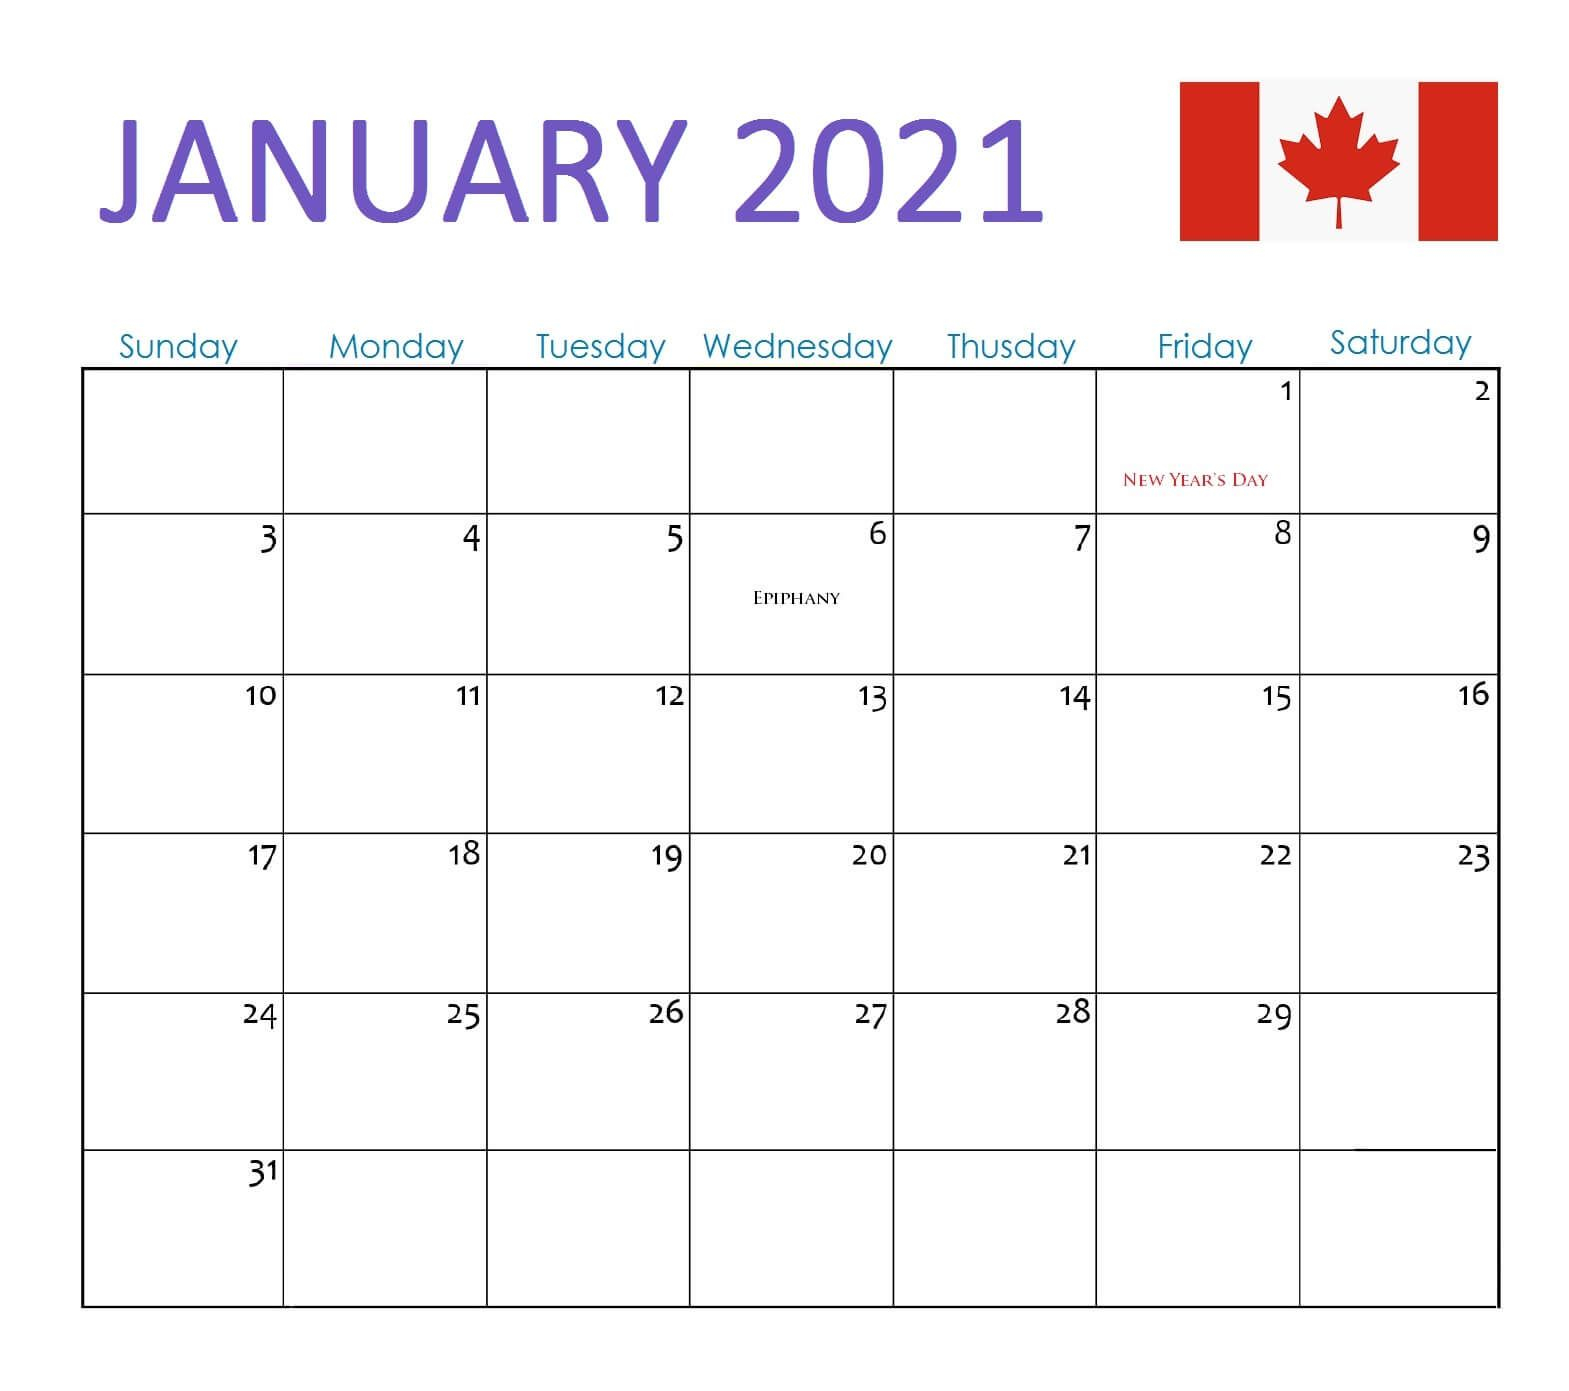 January 2021 Calendar Canada With Holidays In 2020 | 2021